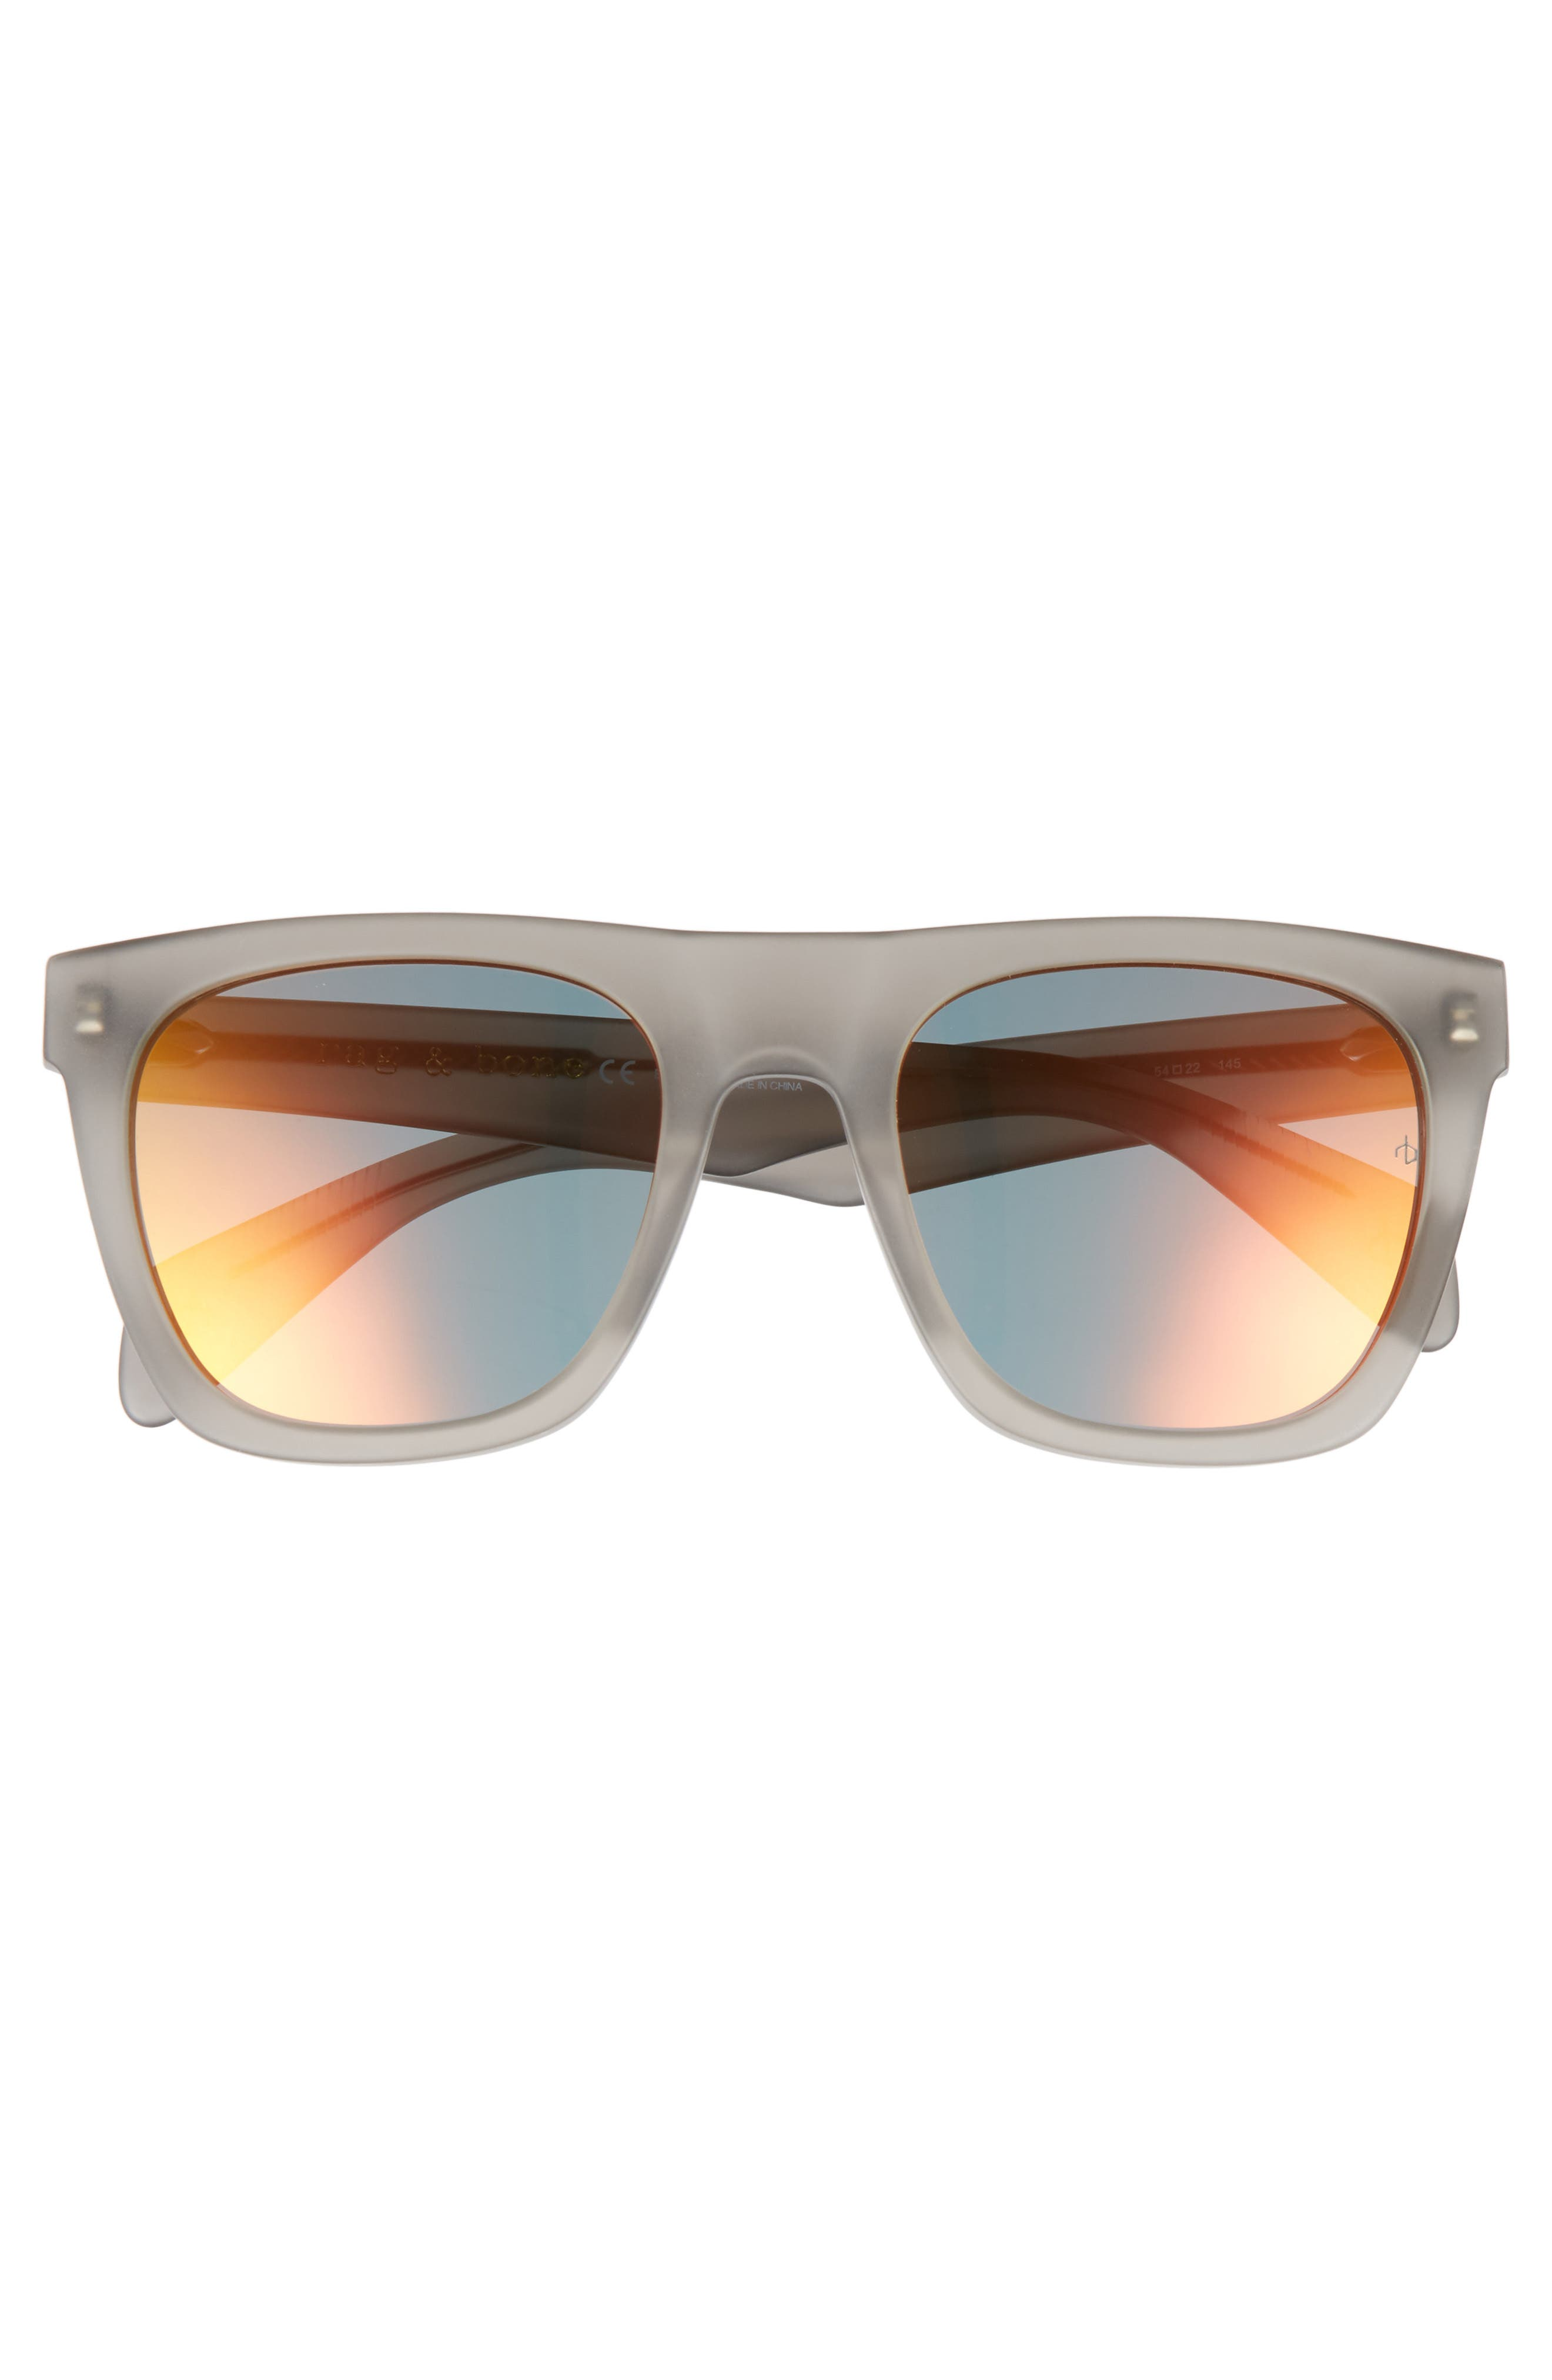 54mm Mirrored Sunglasses,                             Alternate thumbnail 2, color,                             MATTE GREY